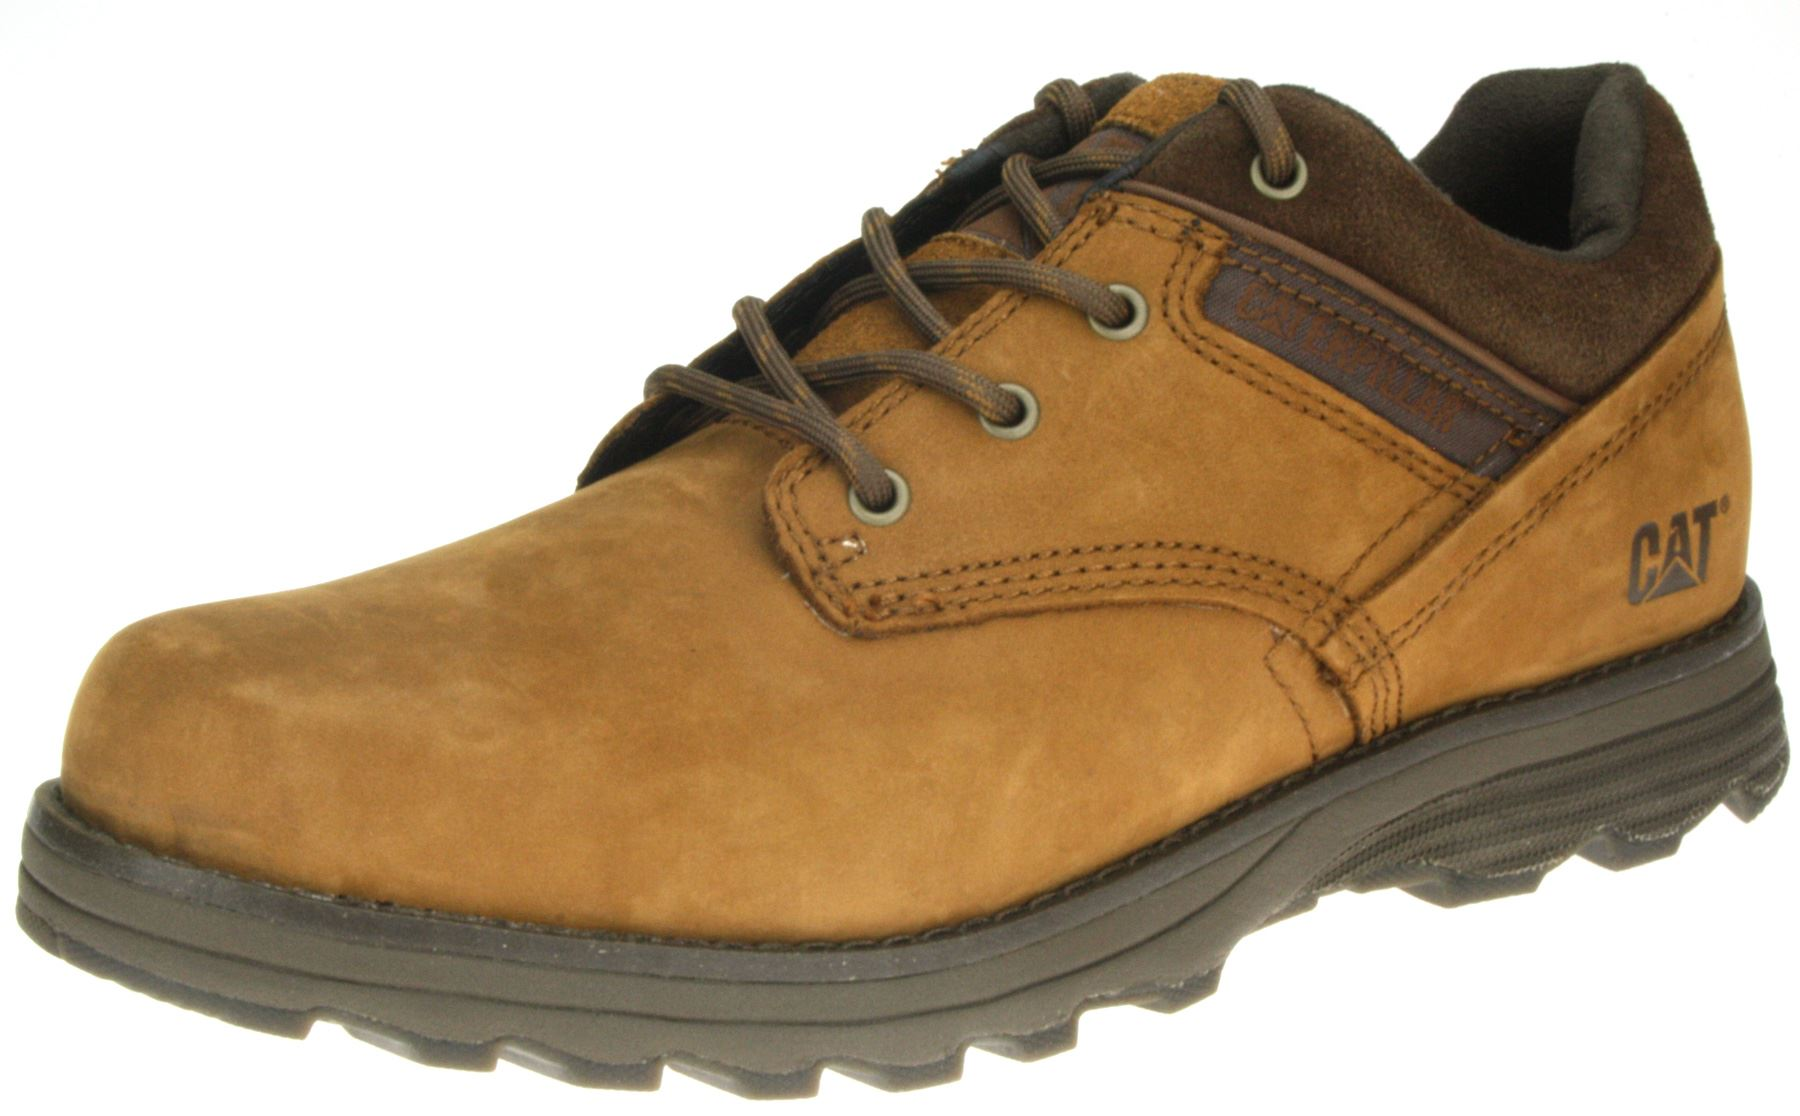 caterpillar cat mens affront leather chukka lace up shoes